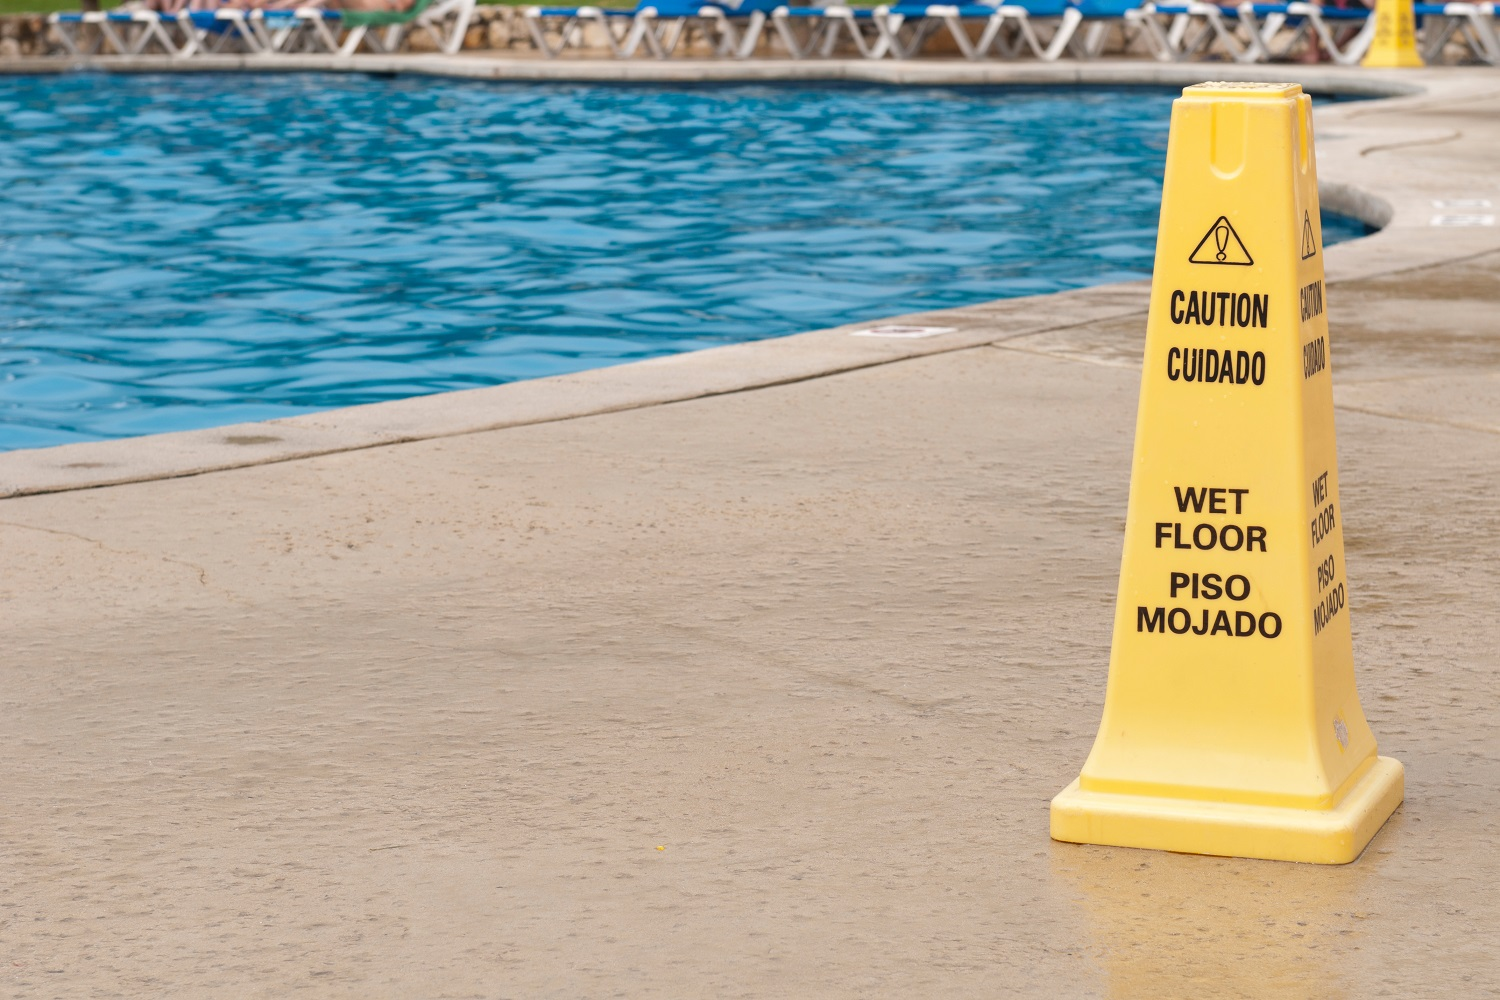 Swimming  pool accidents spike in the summer